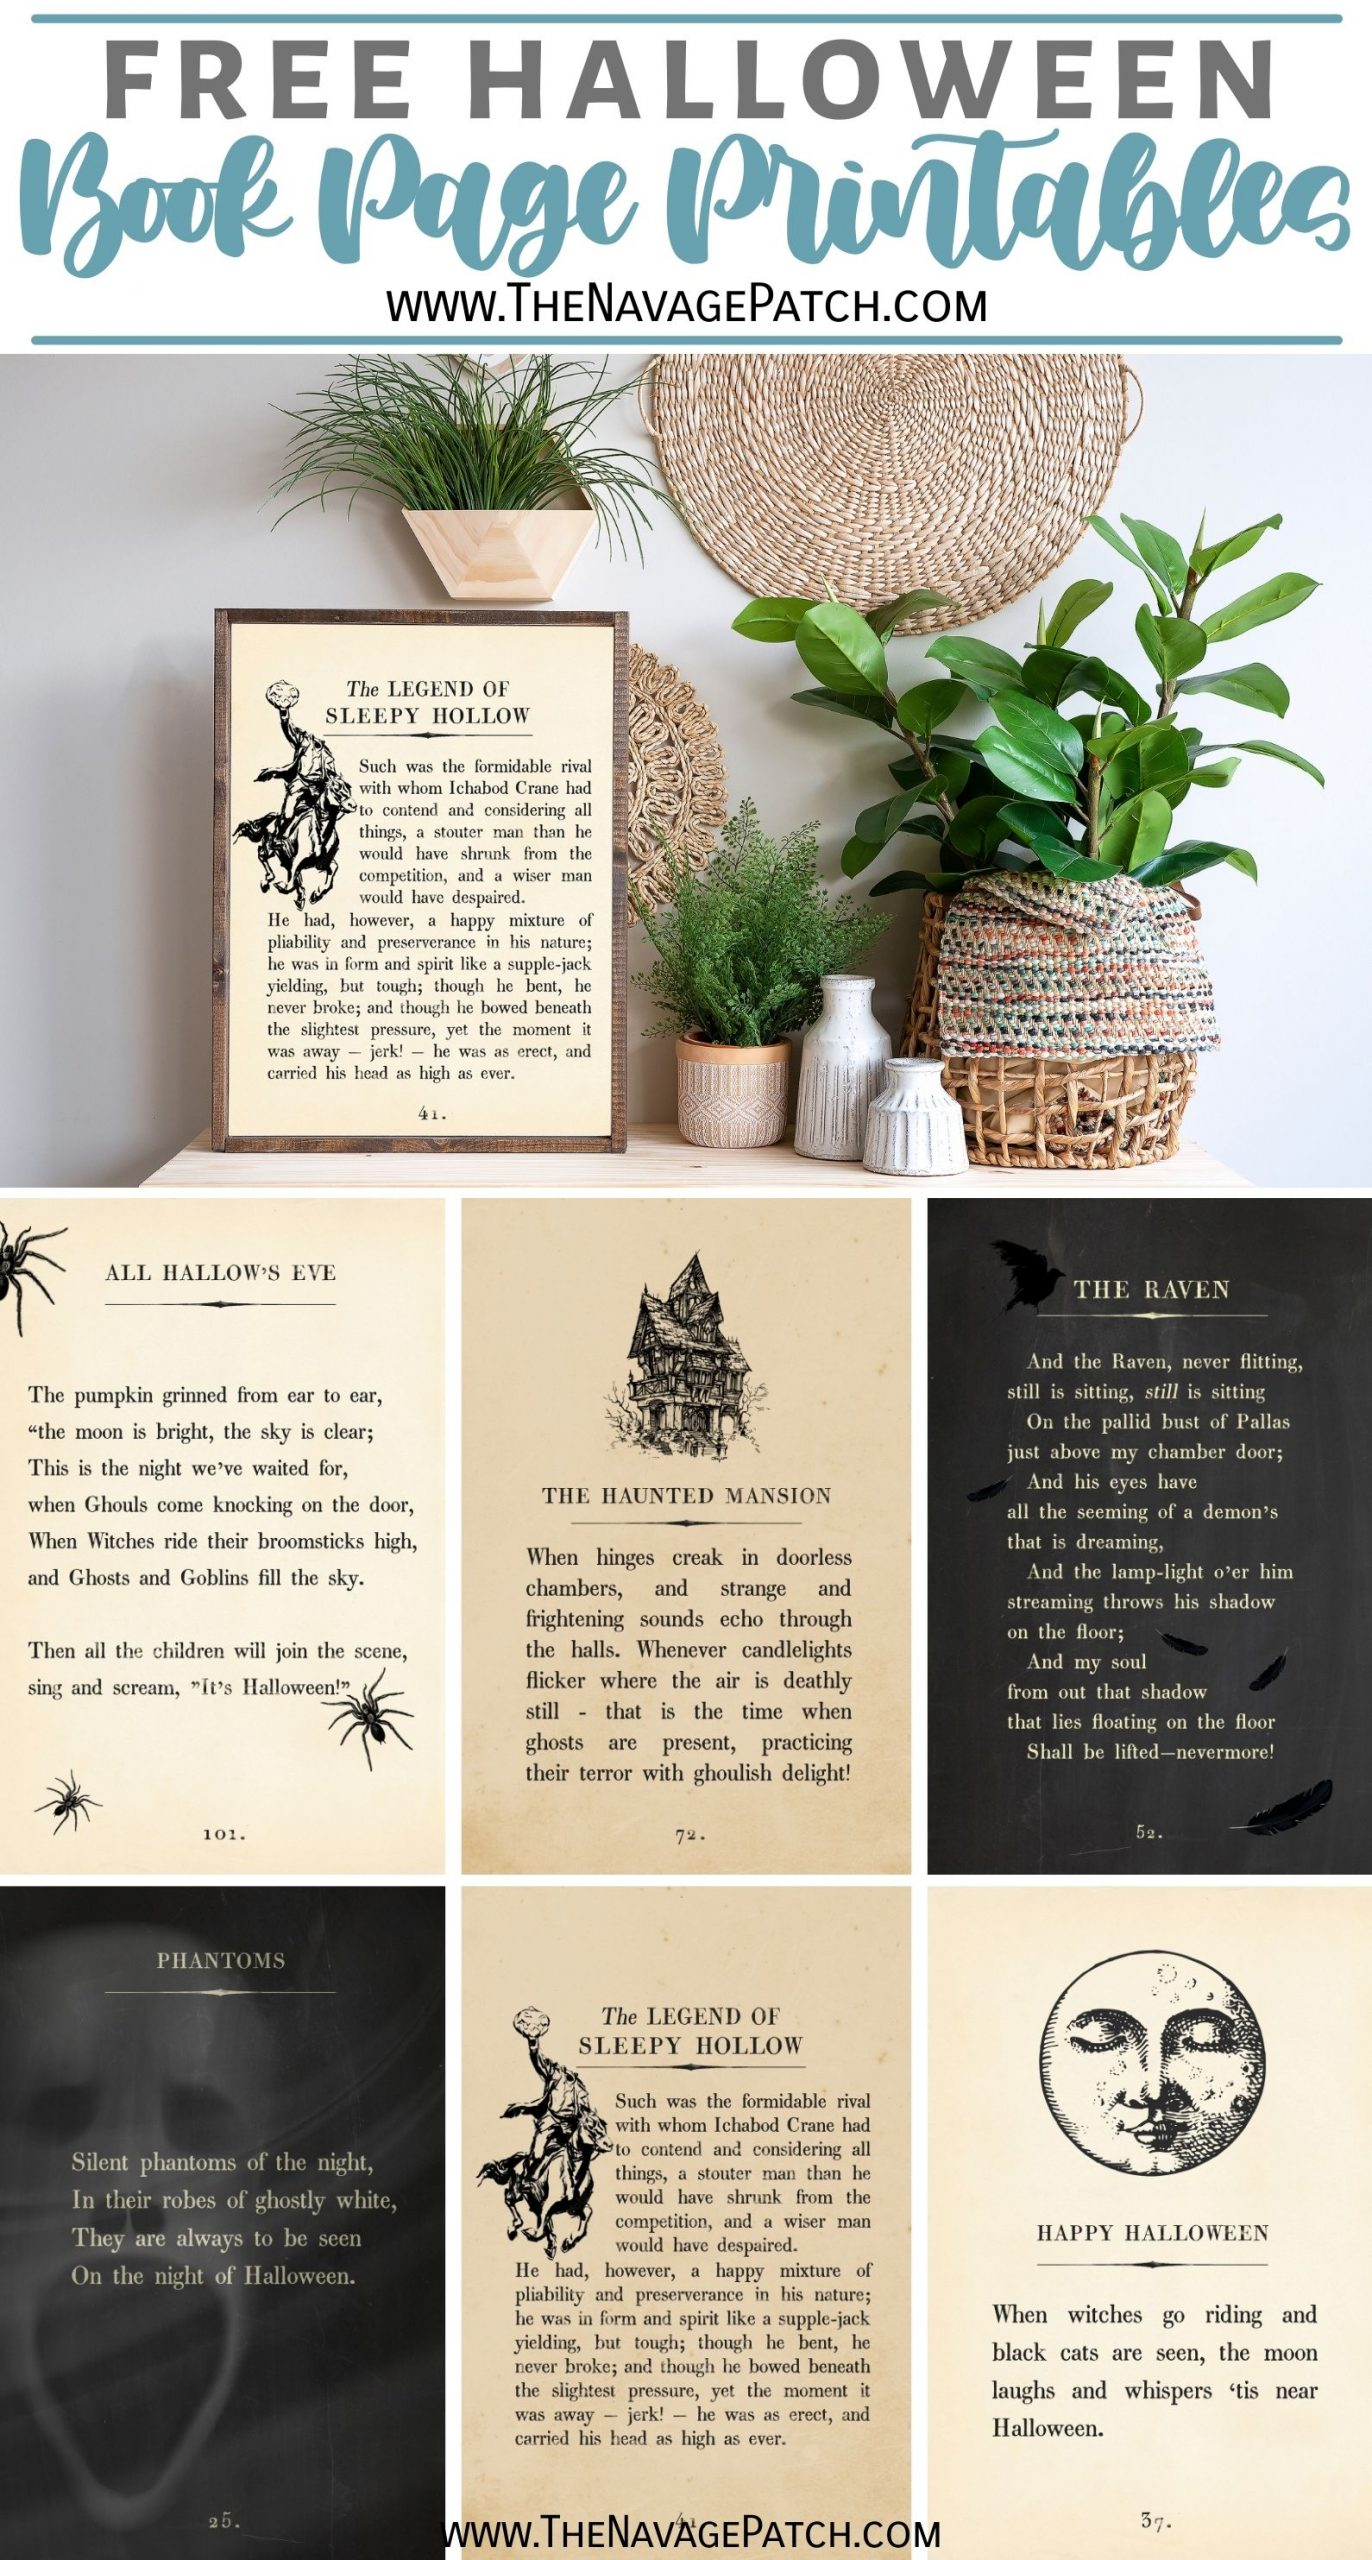 Free Halloween Book Page Printables - TheNavagePatch.com